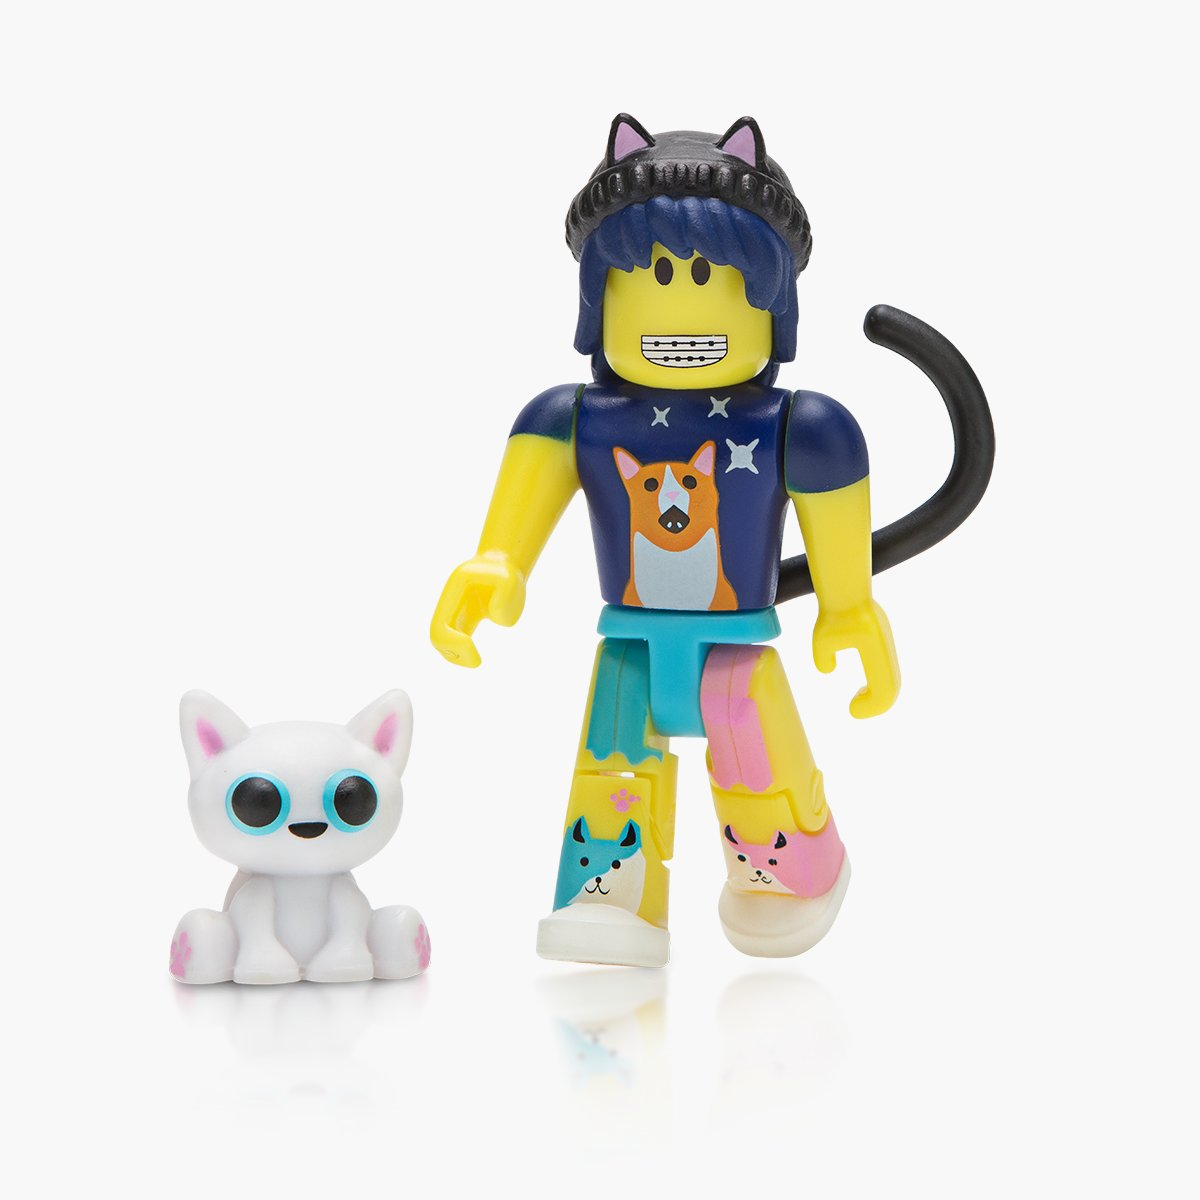 Roblox On Twitter Meow Blogginallcats Is Simply Purrfect Not All